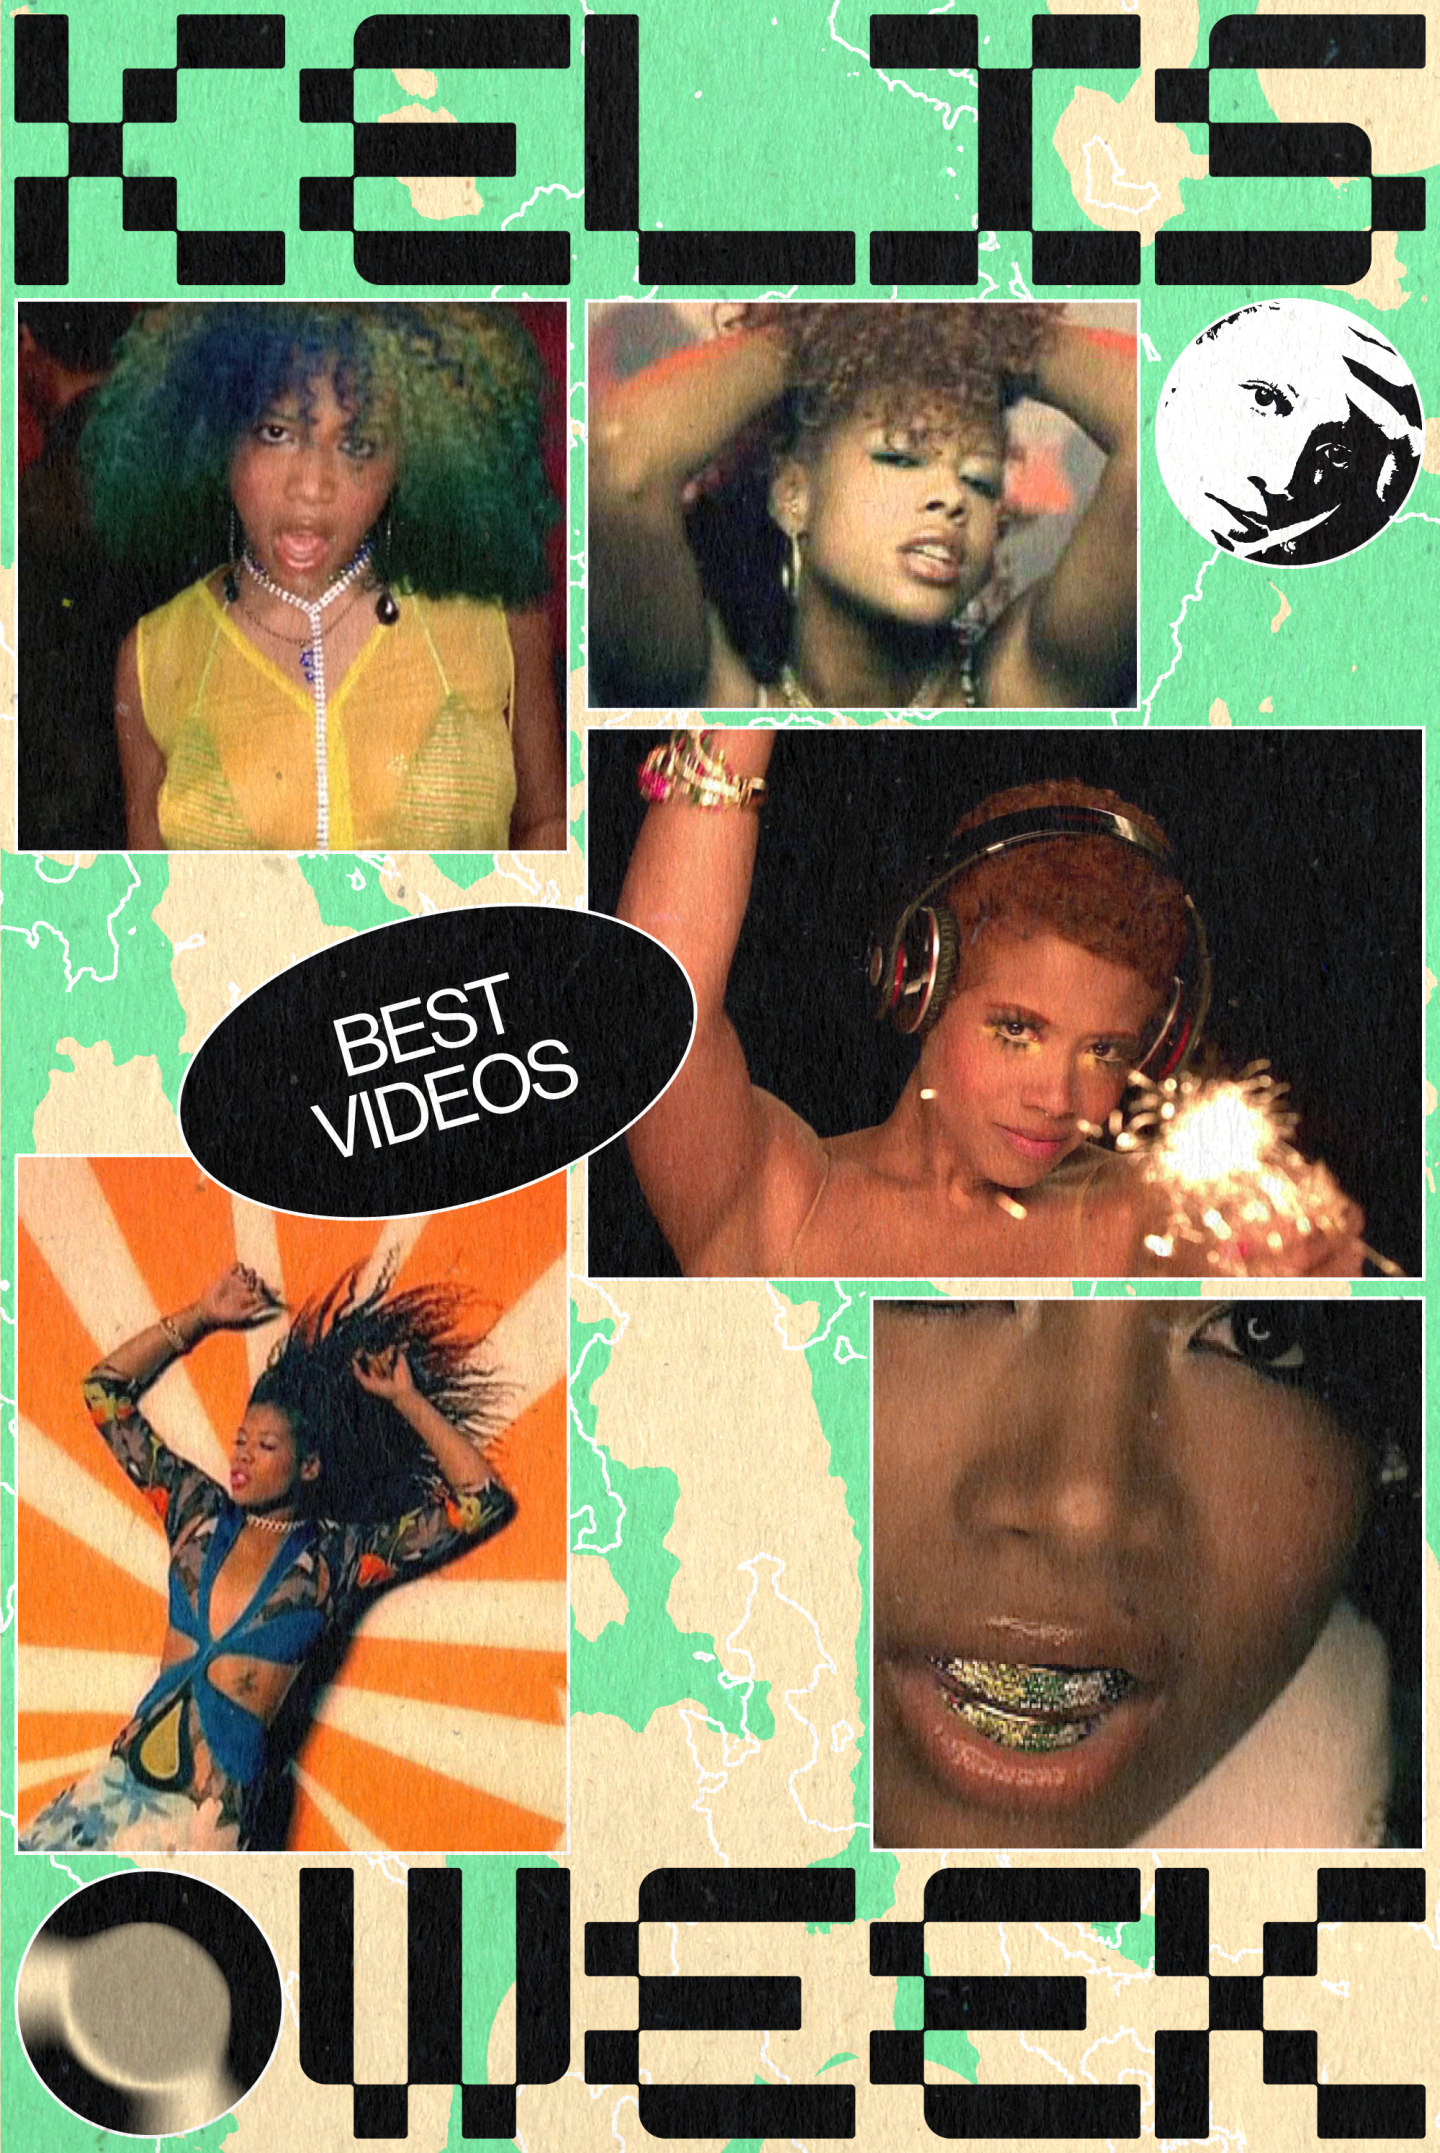 All of Kelis's music videos are works of art